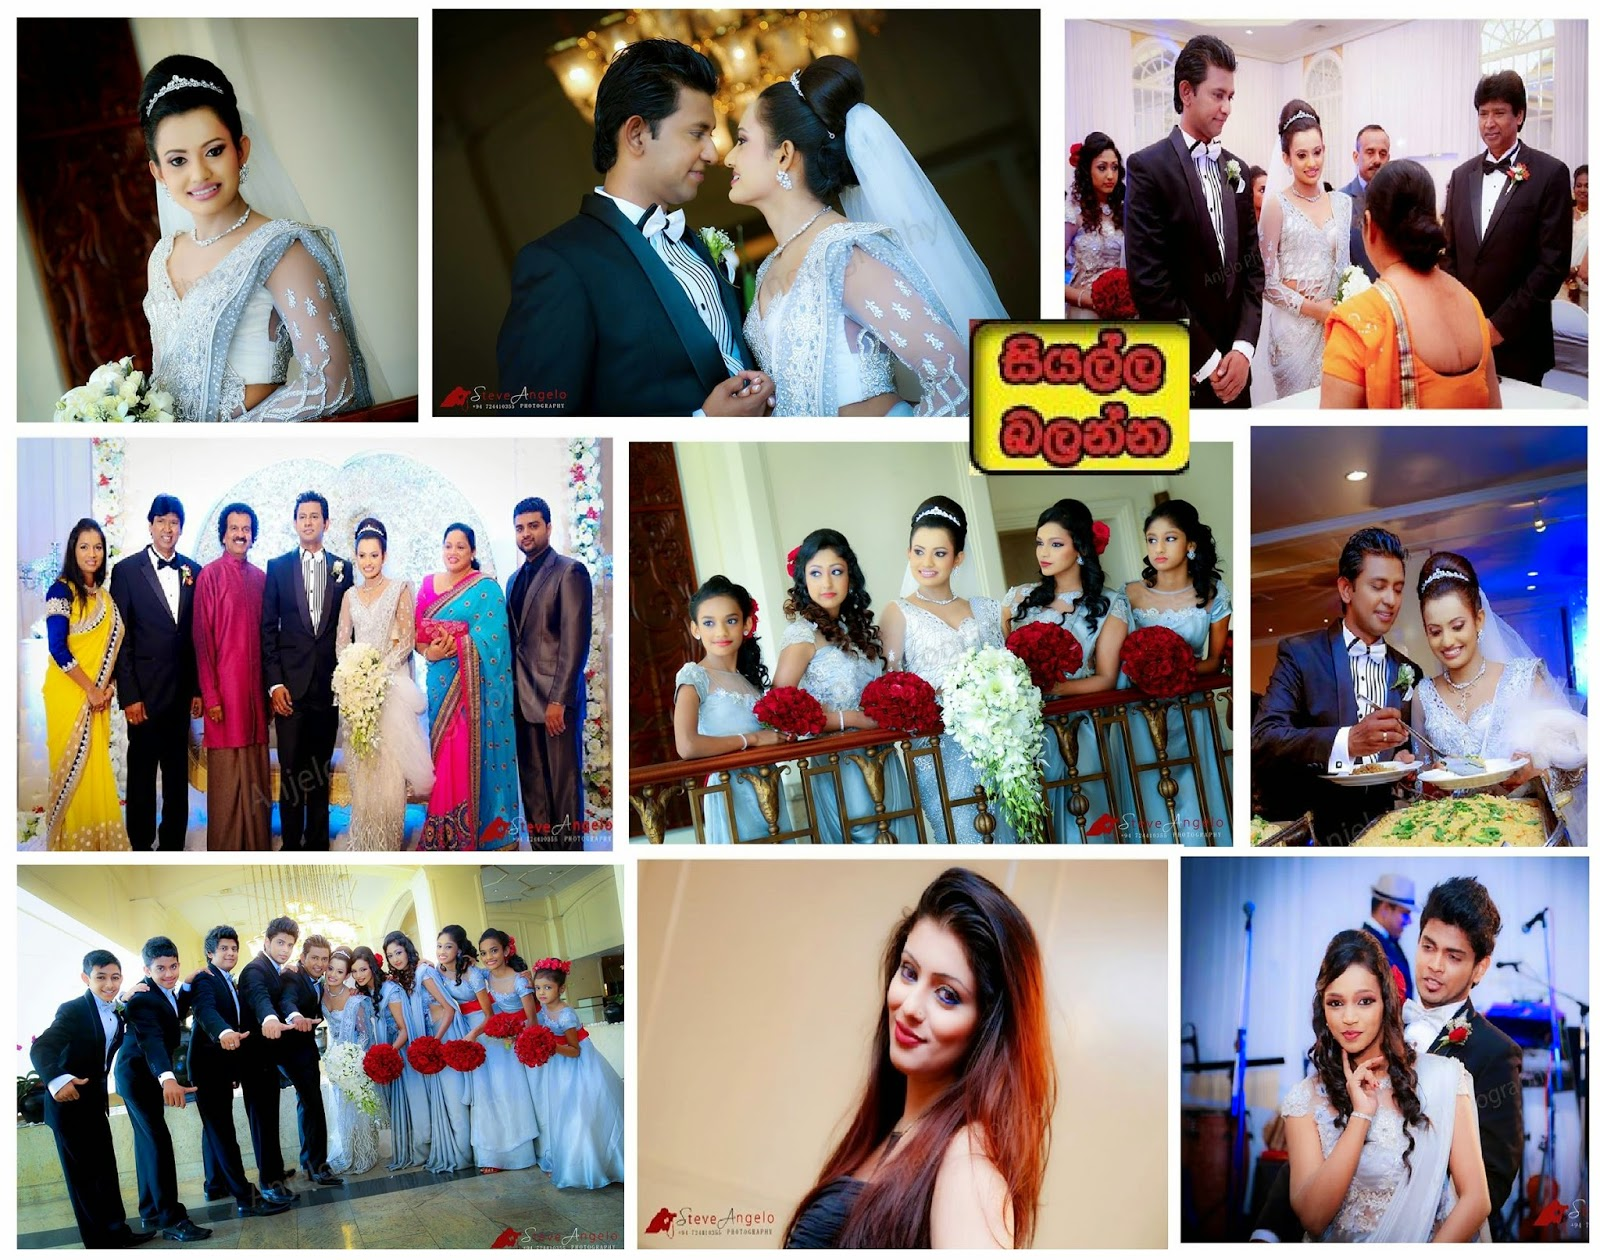 http://picture.gossiplankahotnews.com/2014/12/chethana-kasun-wedding-day.html